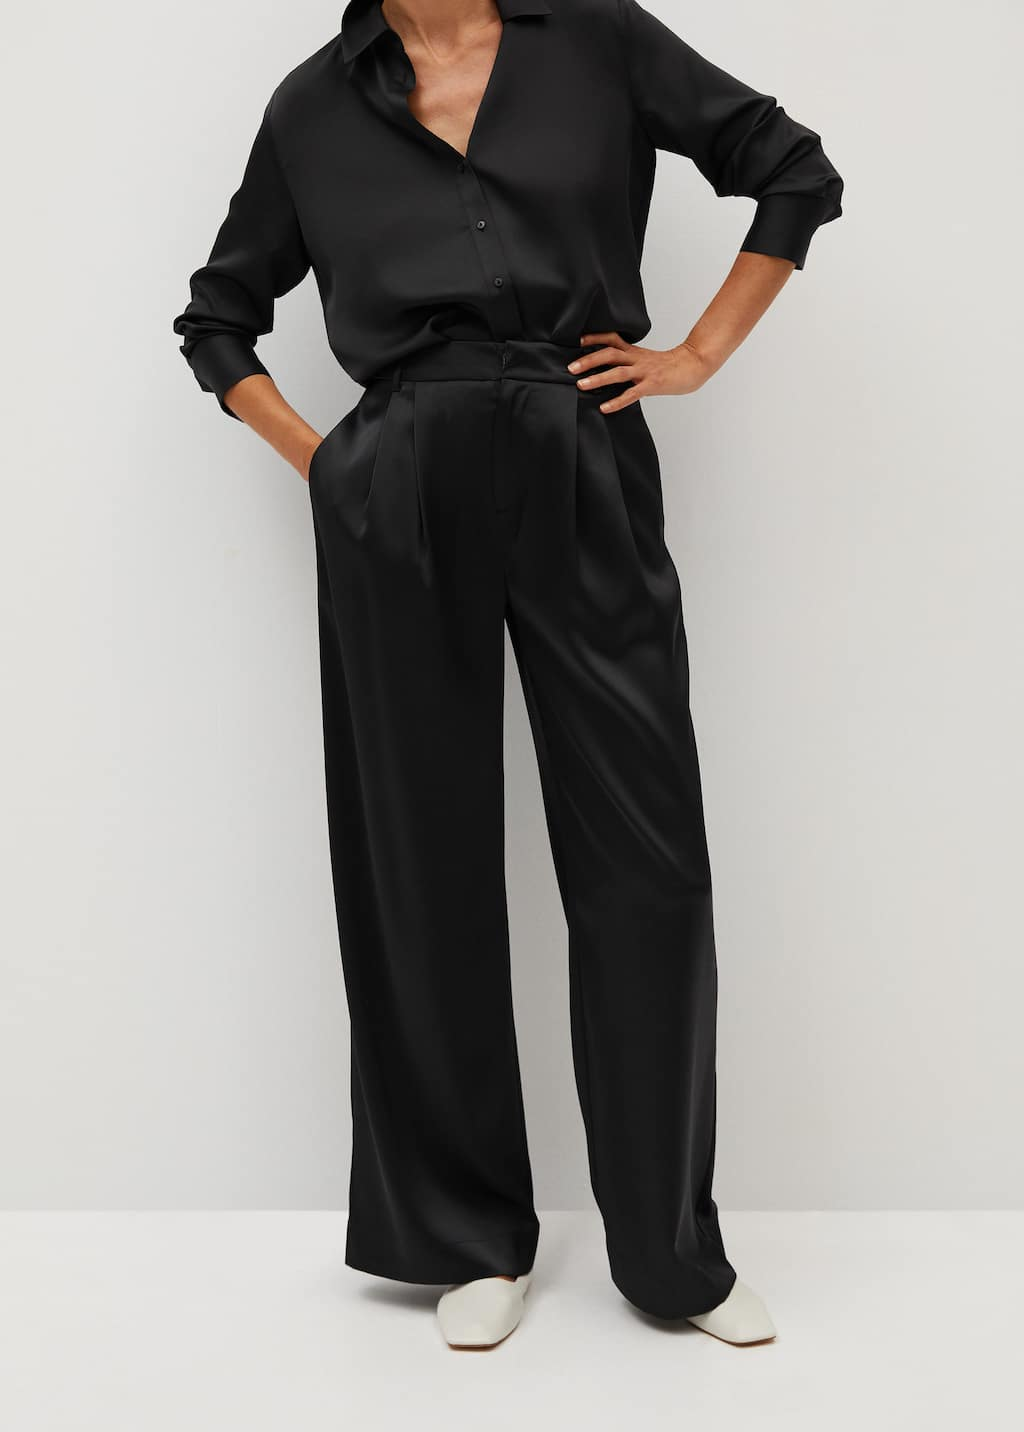 Satin palazzo trousers - Medium plane